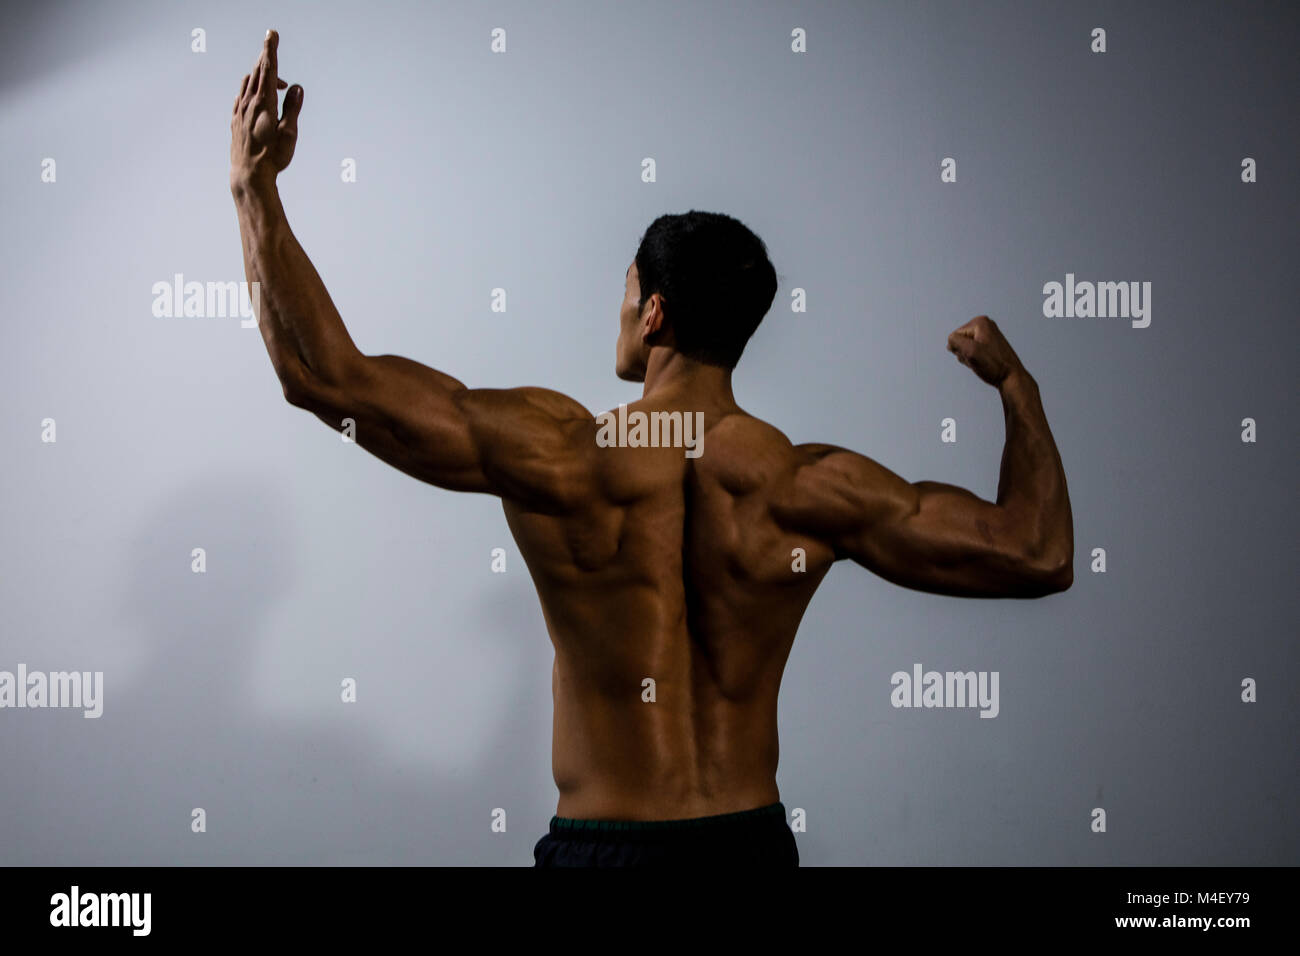 Fitness model displaying his back muscles. Medium shot. Rear View. - Stock Image